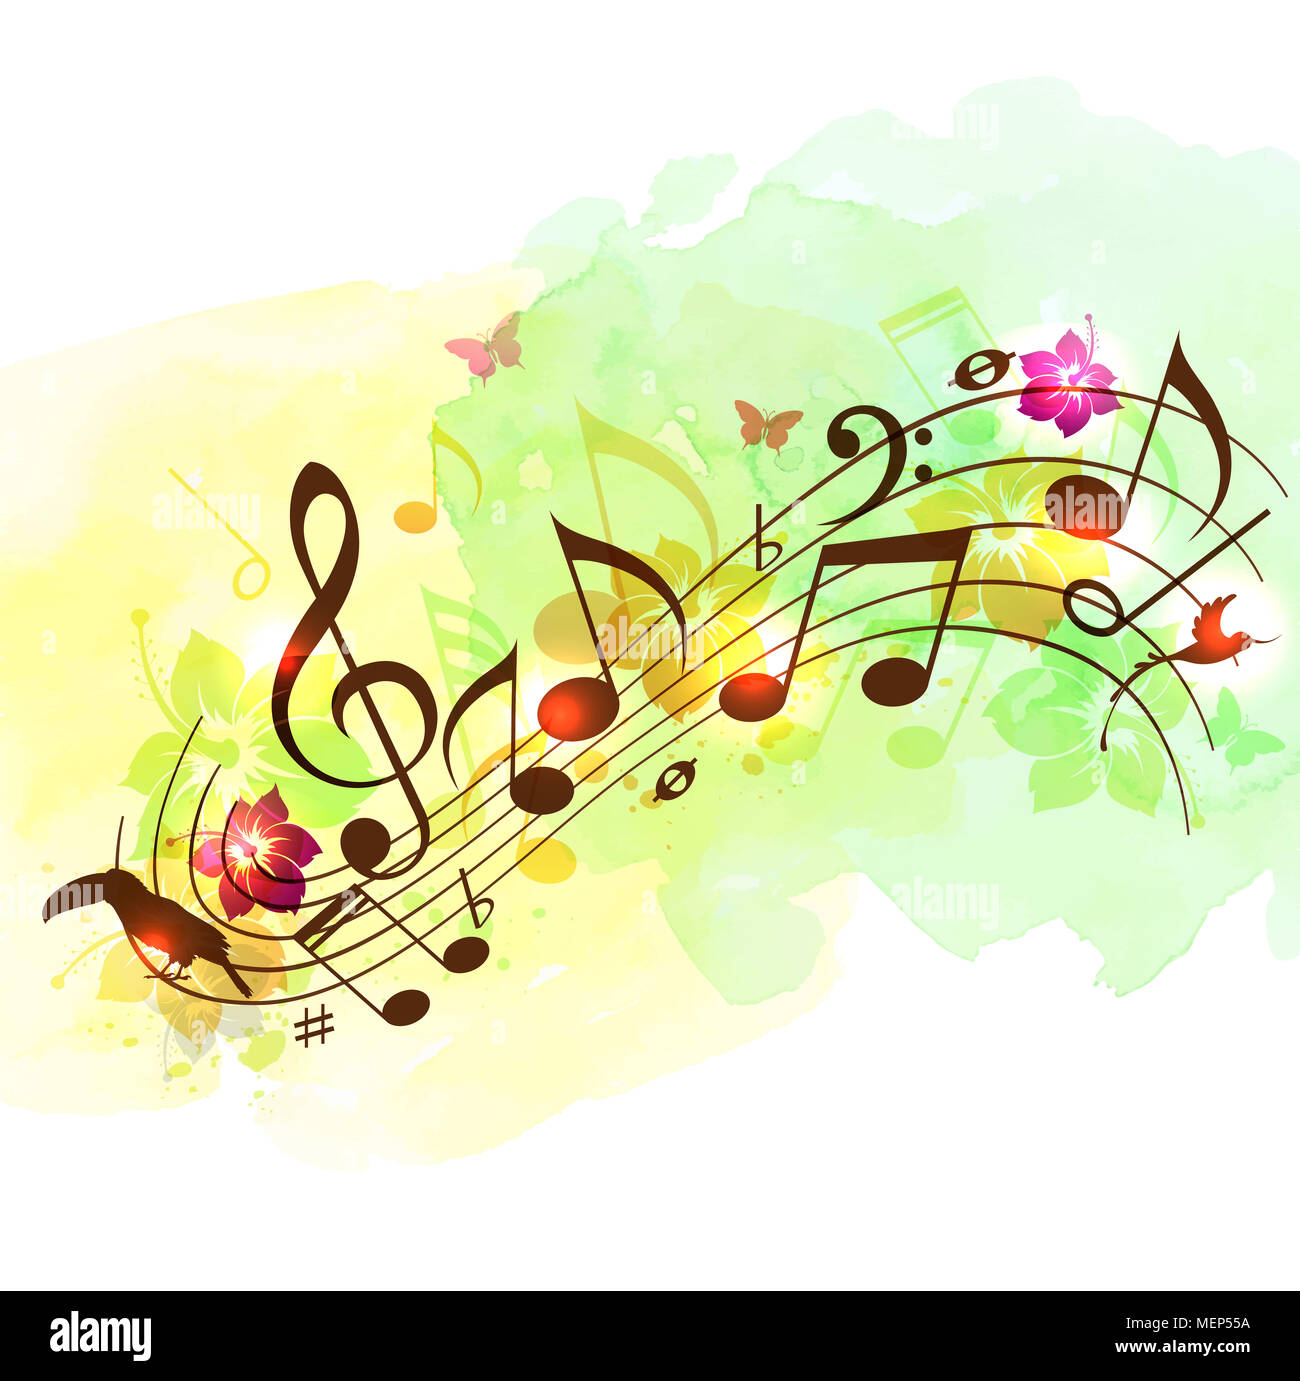 Abstract Music Background With Notes, Tropical Flowers And